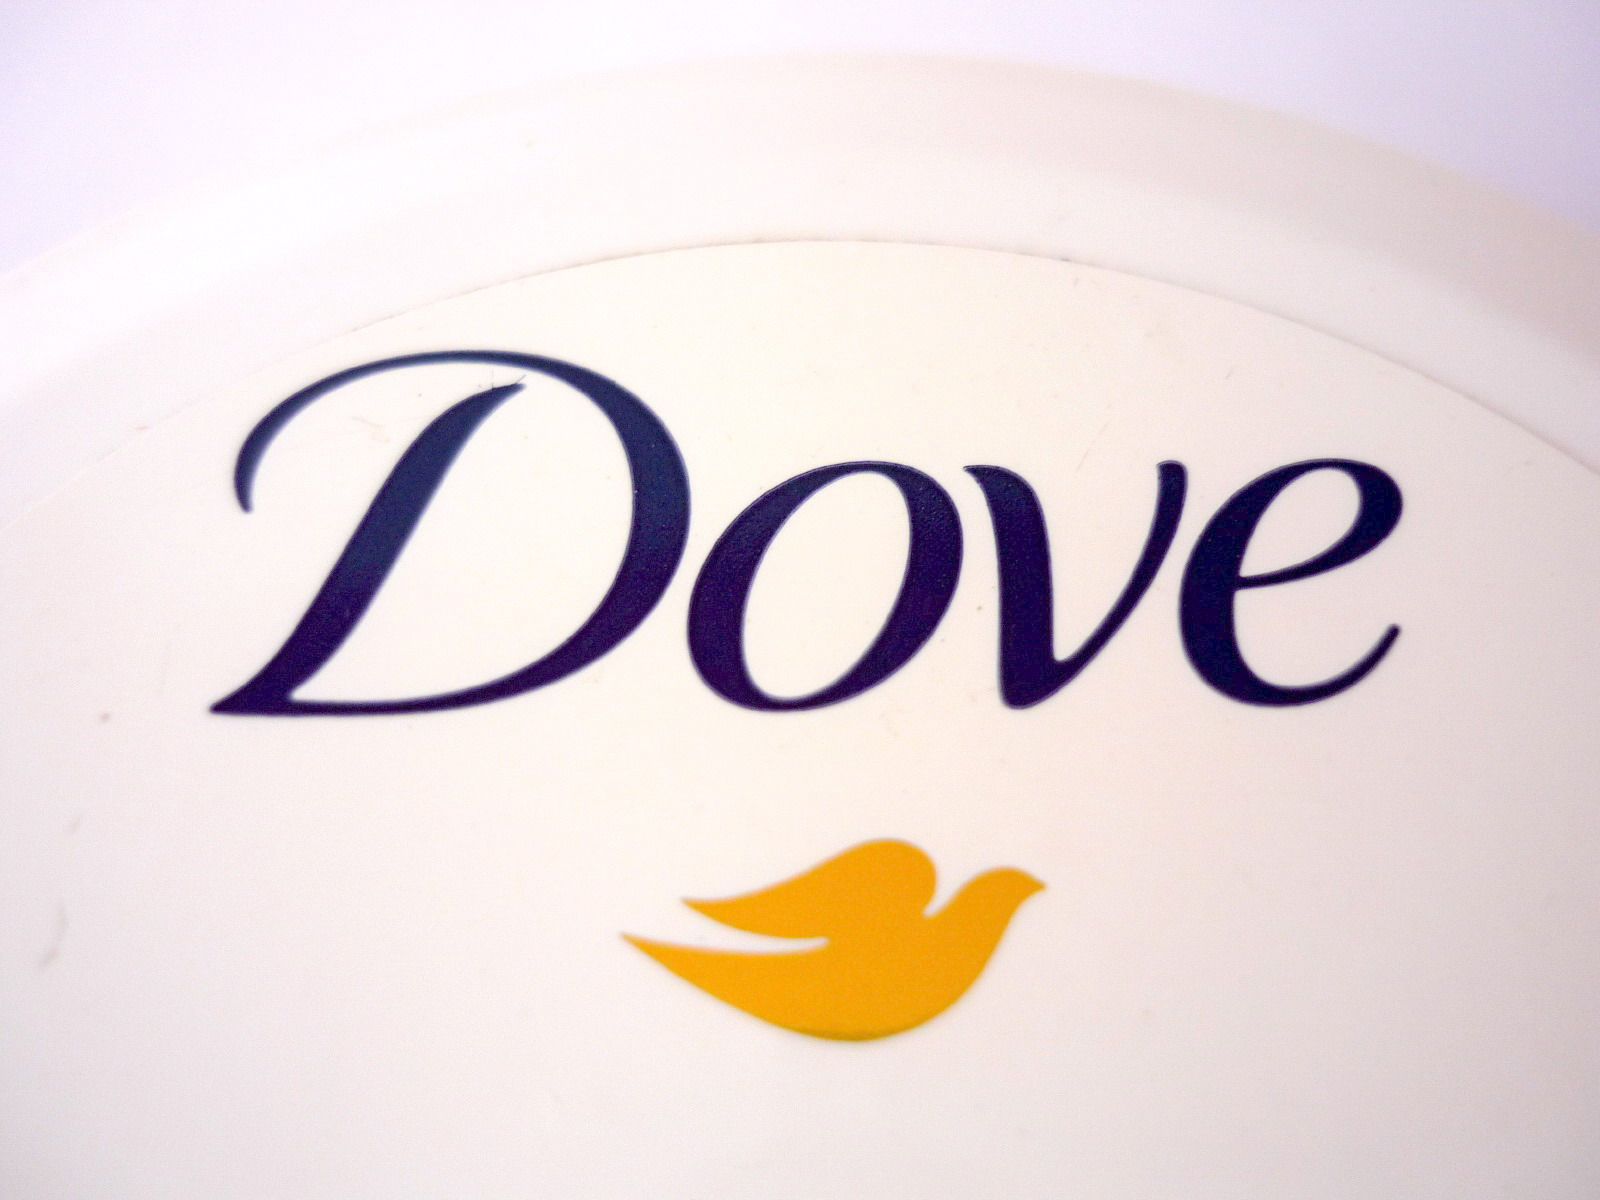 Dove cream photo